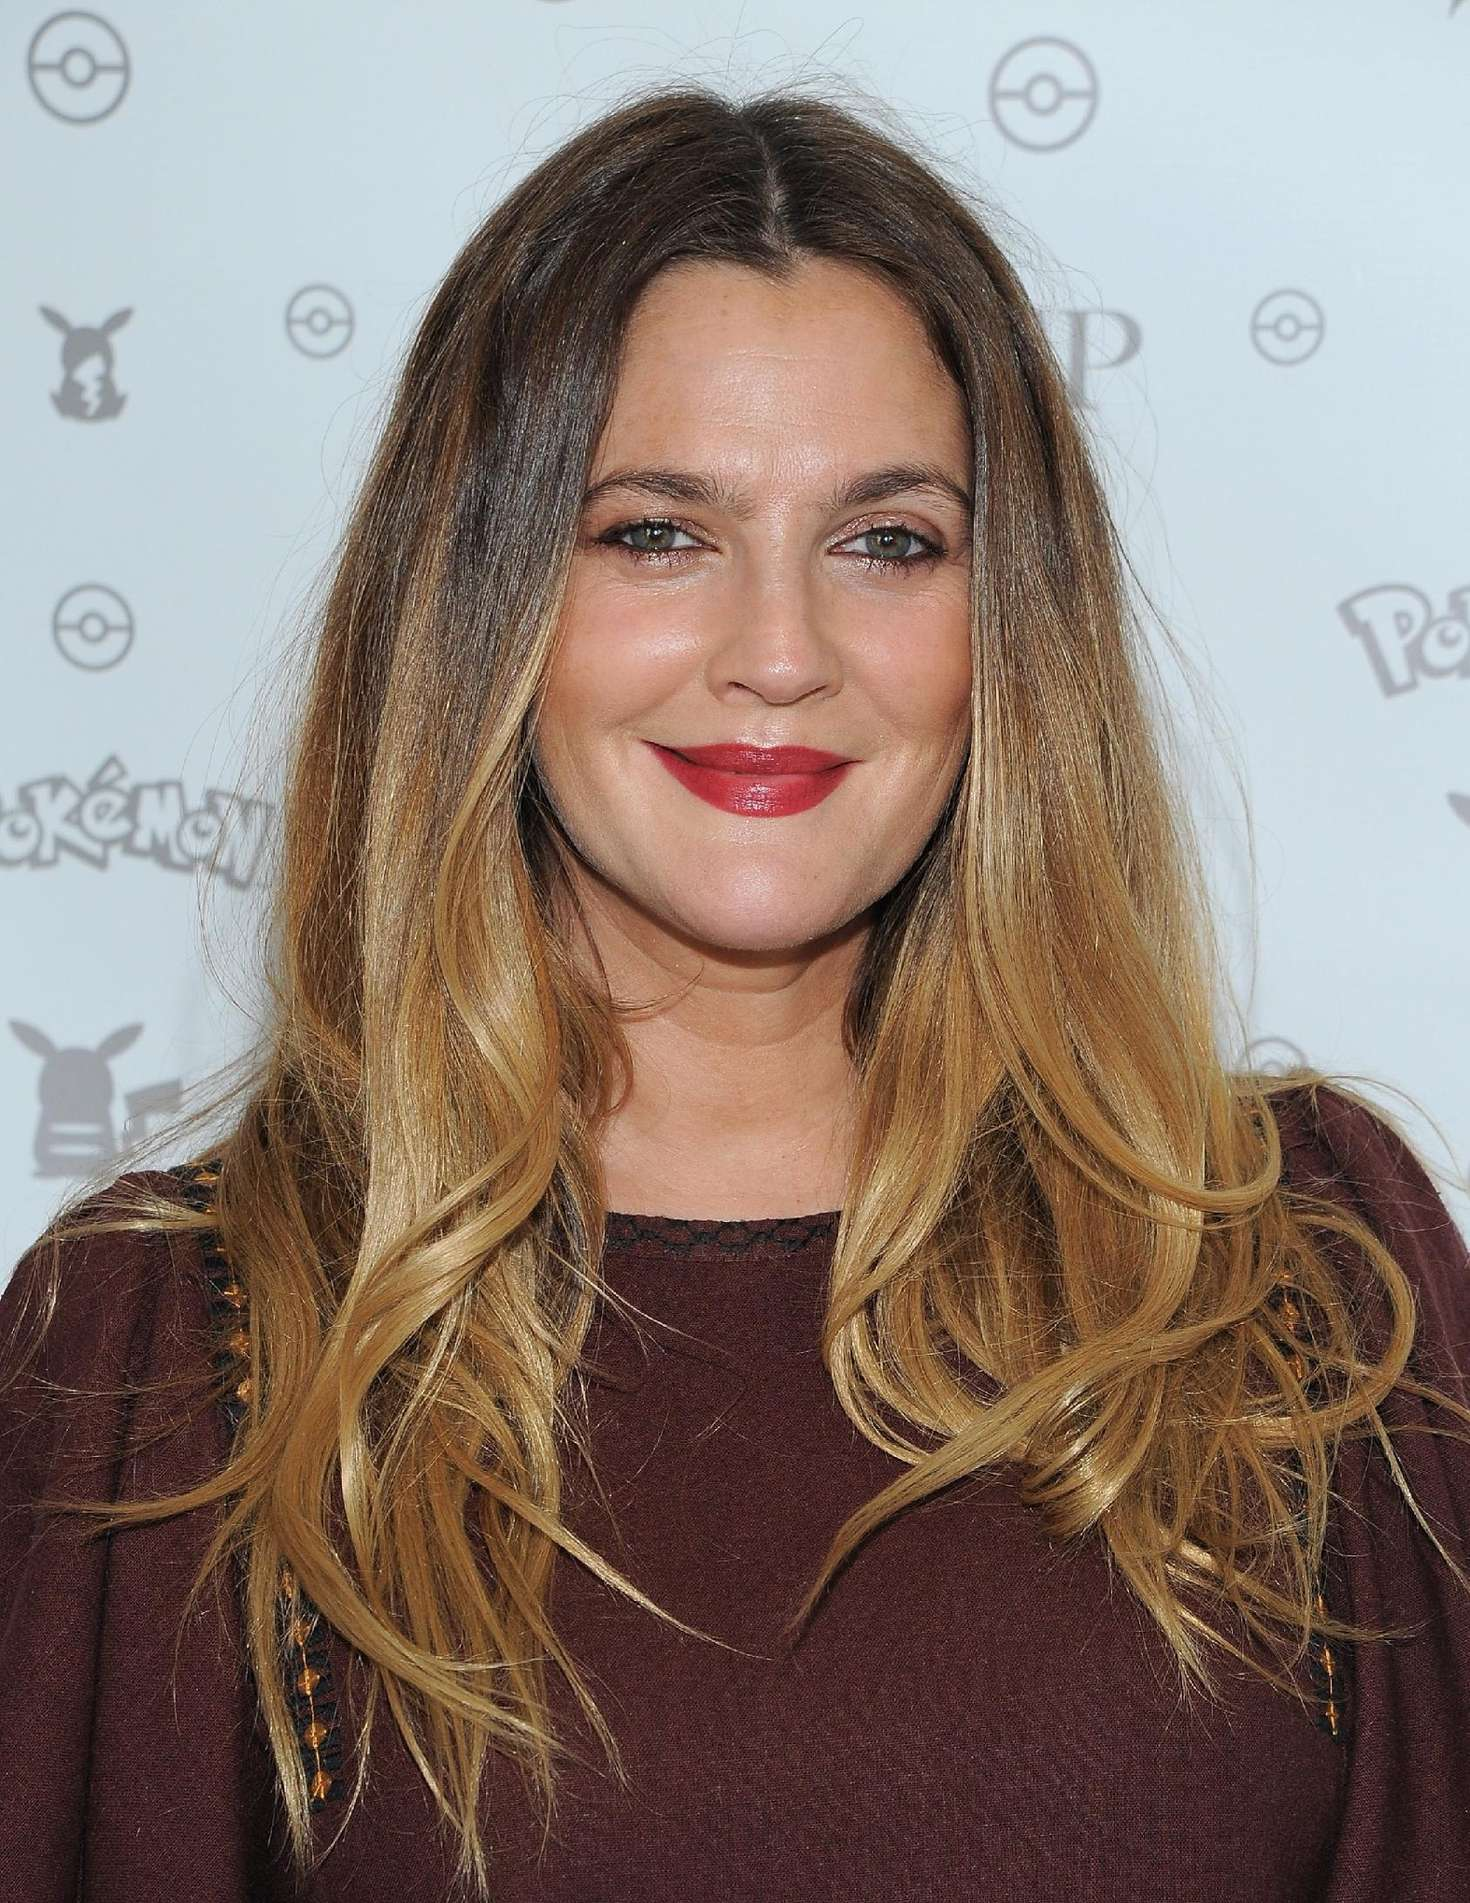 Drew Barrymore 2016 : Drew Barrymore: Tracy Paul and Co Presents Pokemon Afternoon Soiree -18